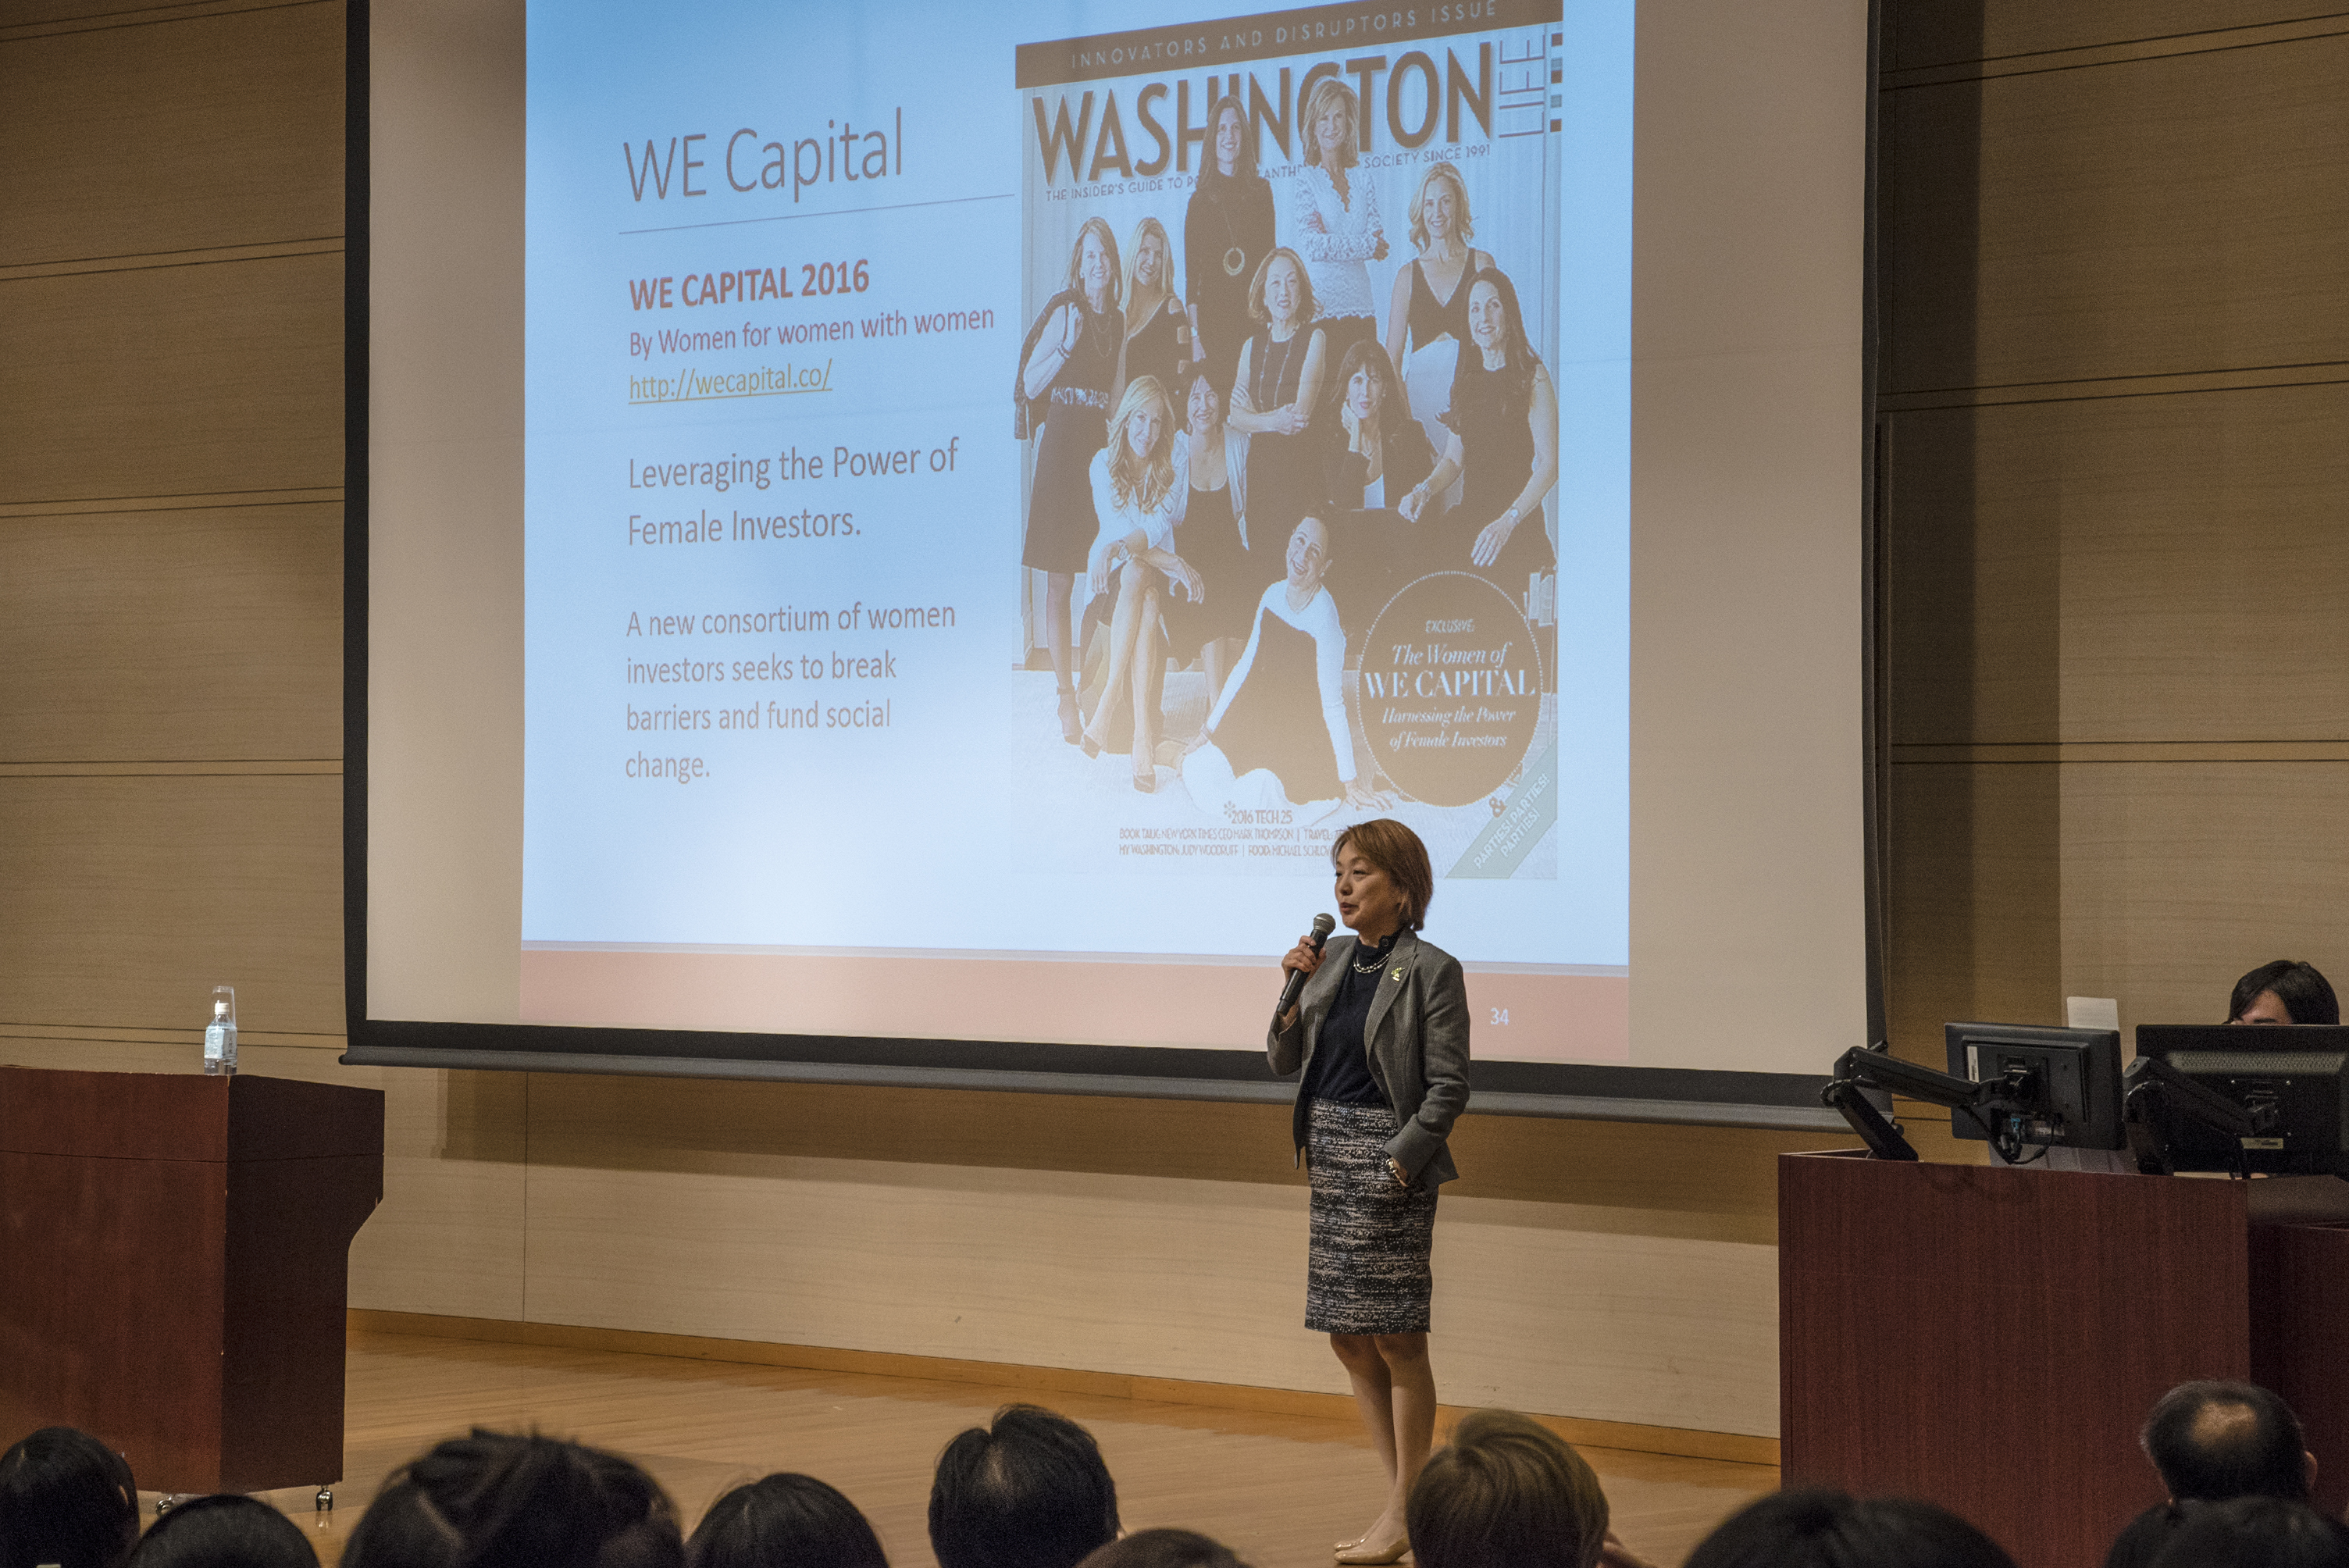 Dr. Kuno stands on stage. In the background is a slide of a front page of Washington magazine featuring Dr. Kuno